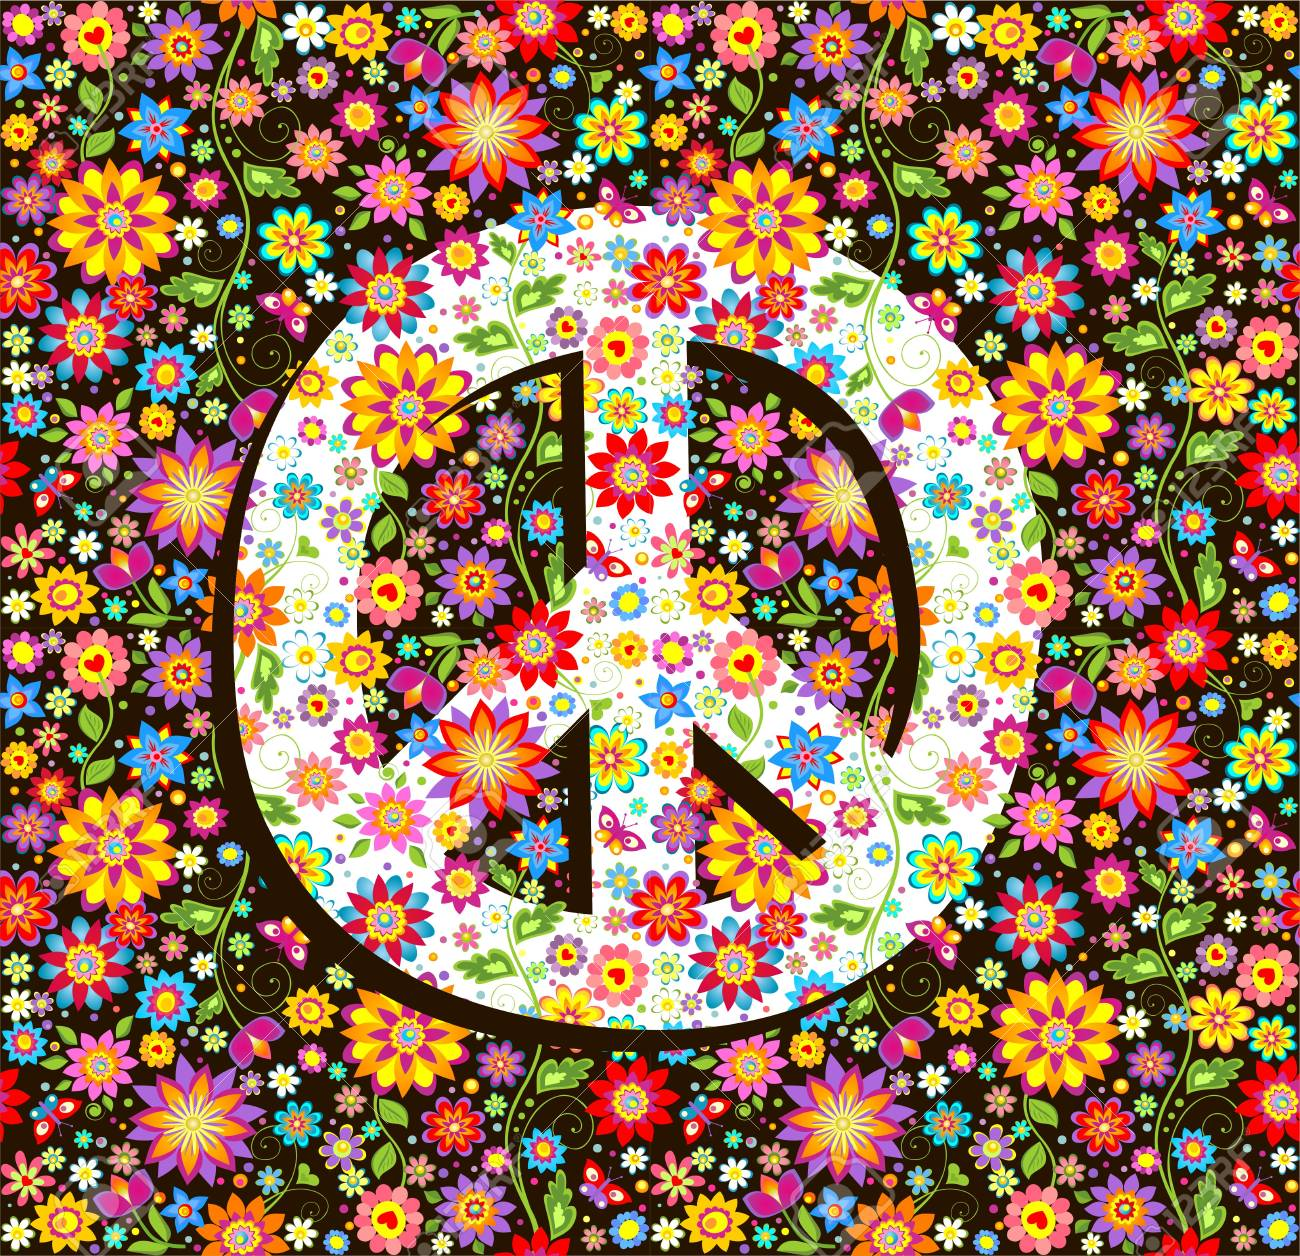 Hippie wallpaper with flowers print and peace symbol. Stock Vector - 94649507